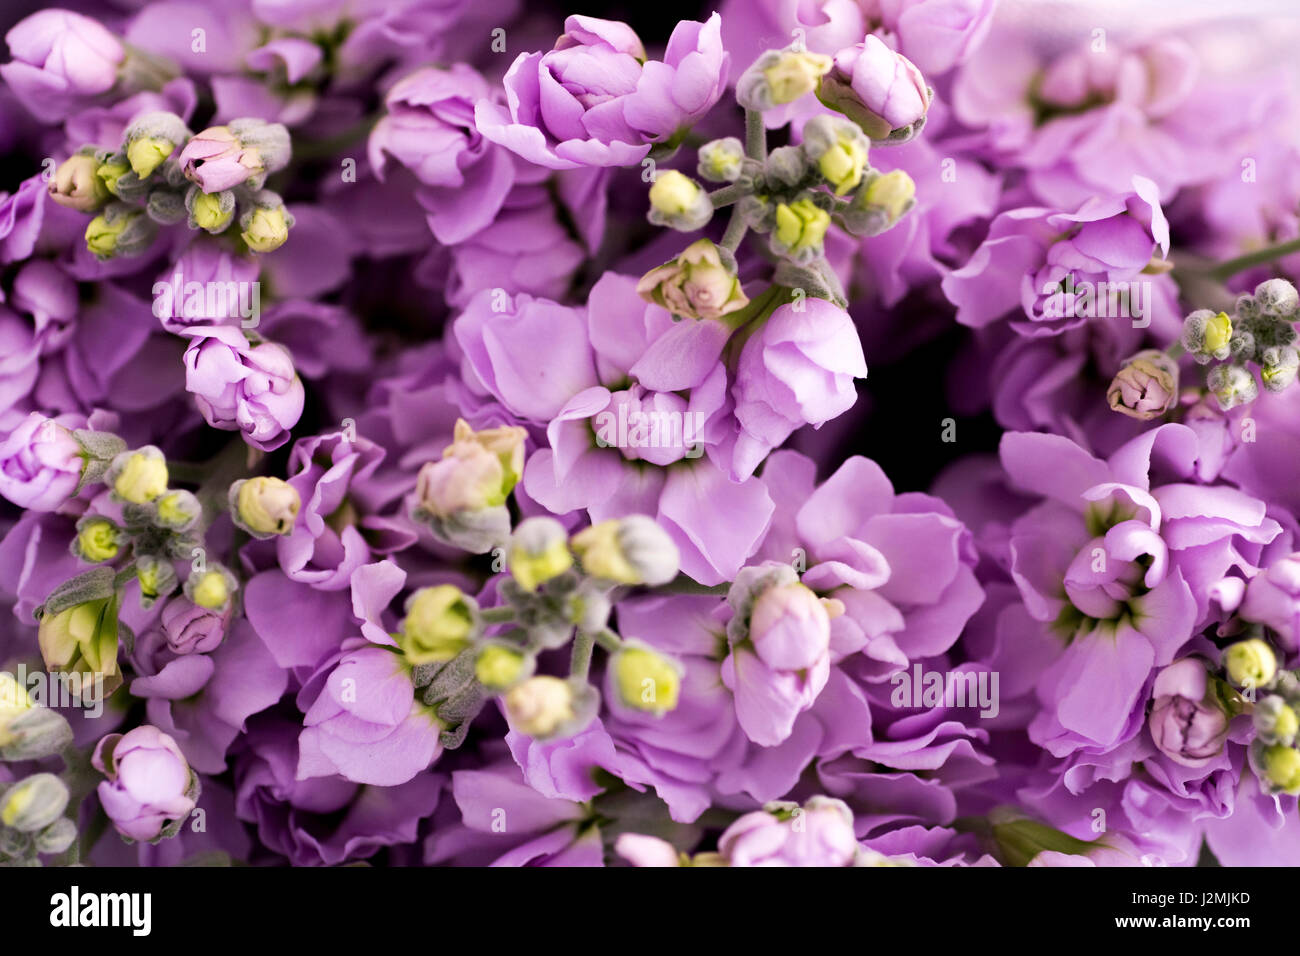 Purple flowers background or textures - Stock Image